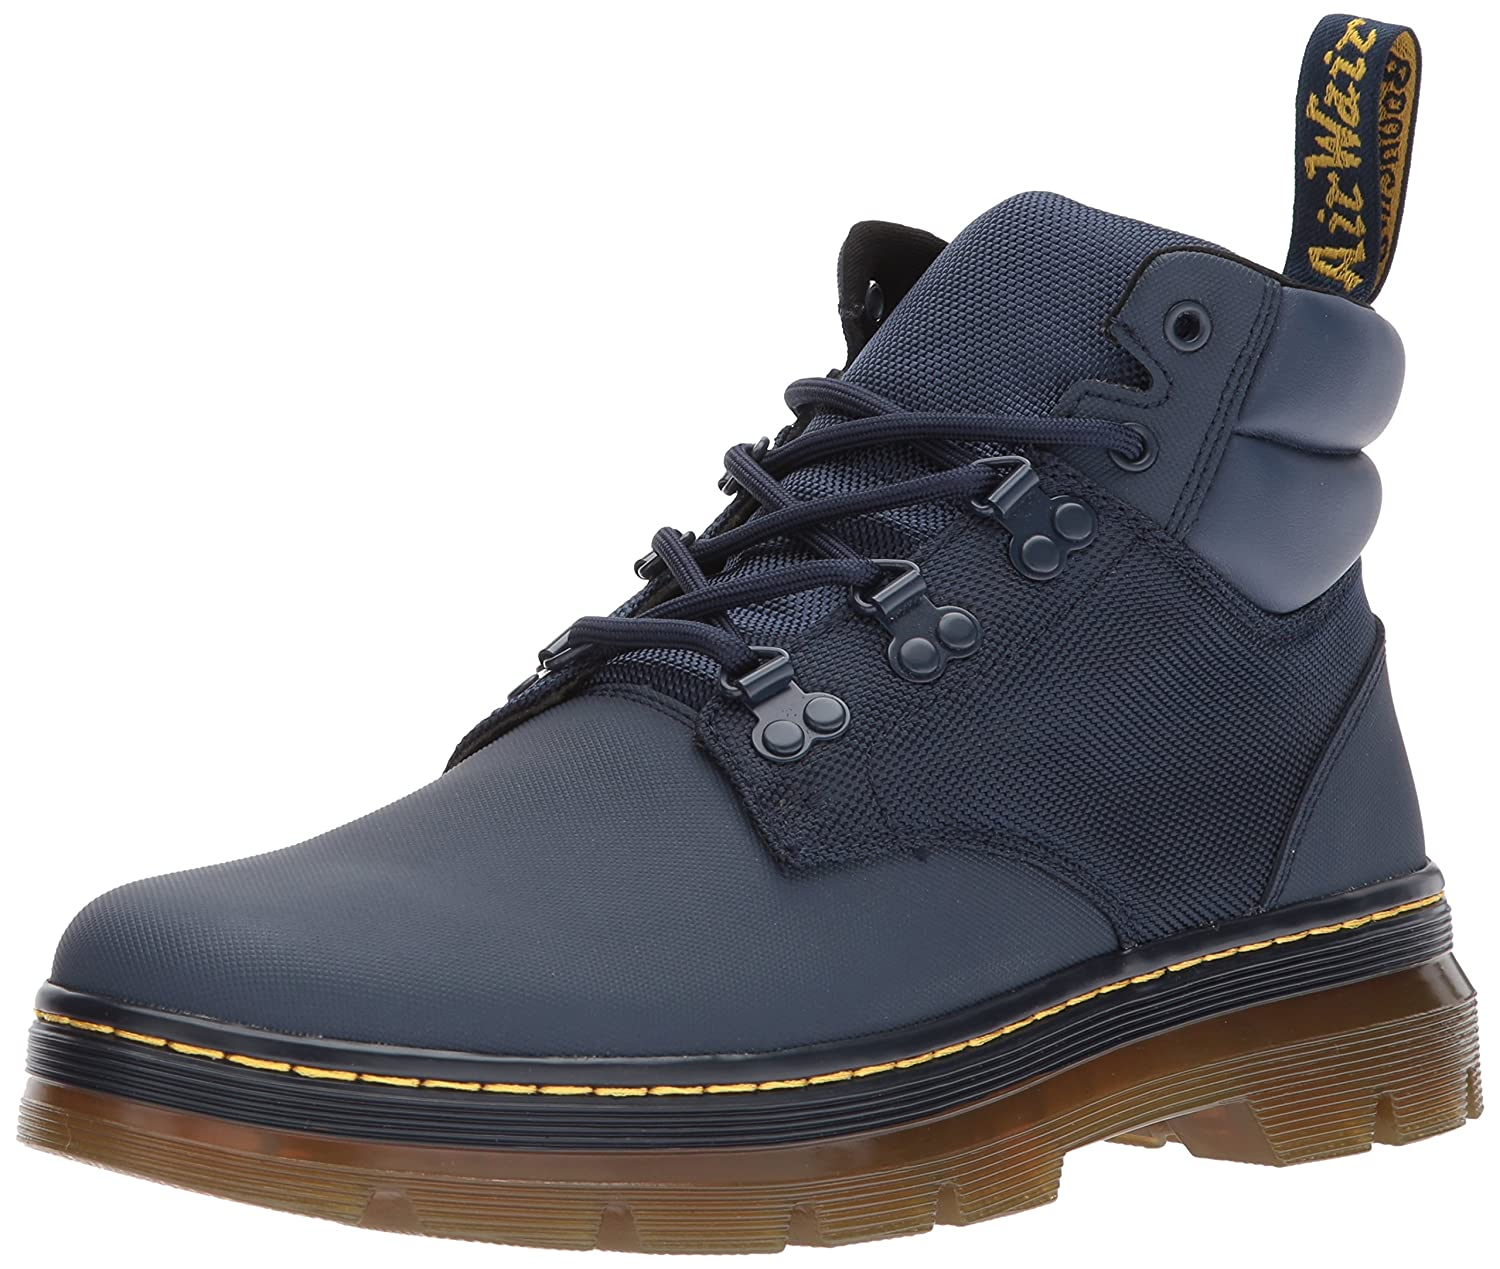 Dr. Martens Rakim Ankle Boot B01N2672E5 3 Medium UK (US Women's 5 US)|Indigo